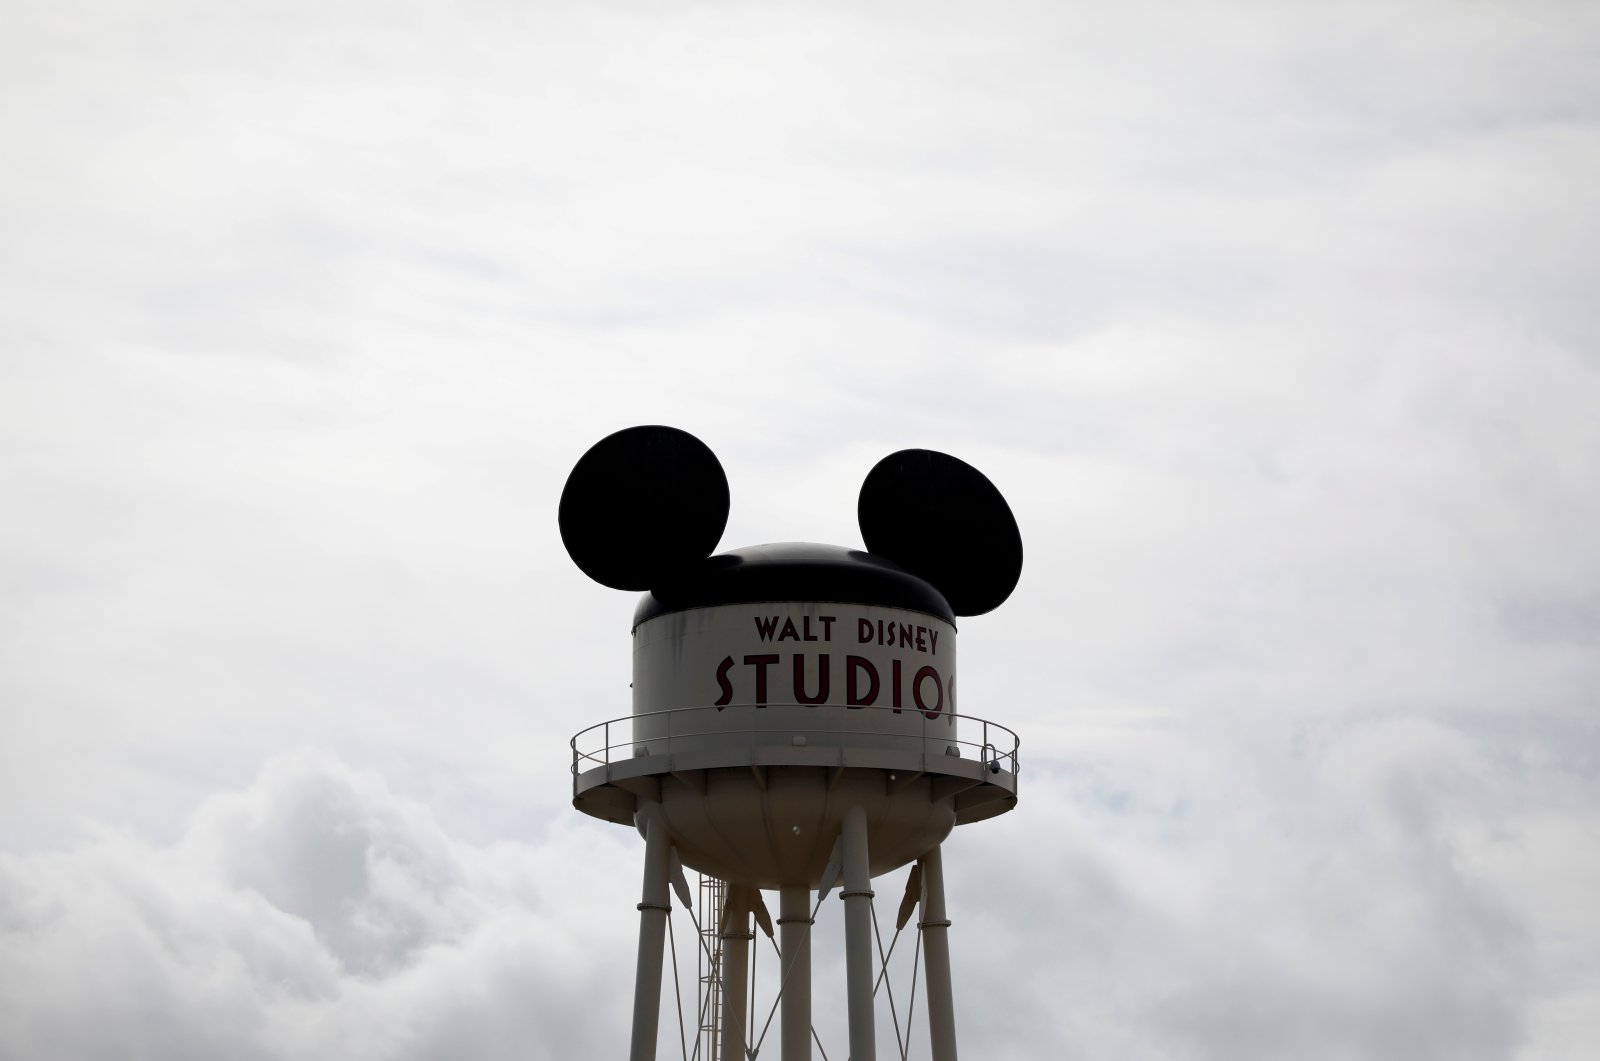 The sign at Walt Disney Studios Park is seen at the entrance of Disneyland Paris, in Marne-la-Vallee, near Paris, France, March 9, 2020.